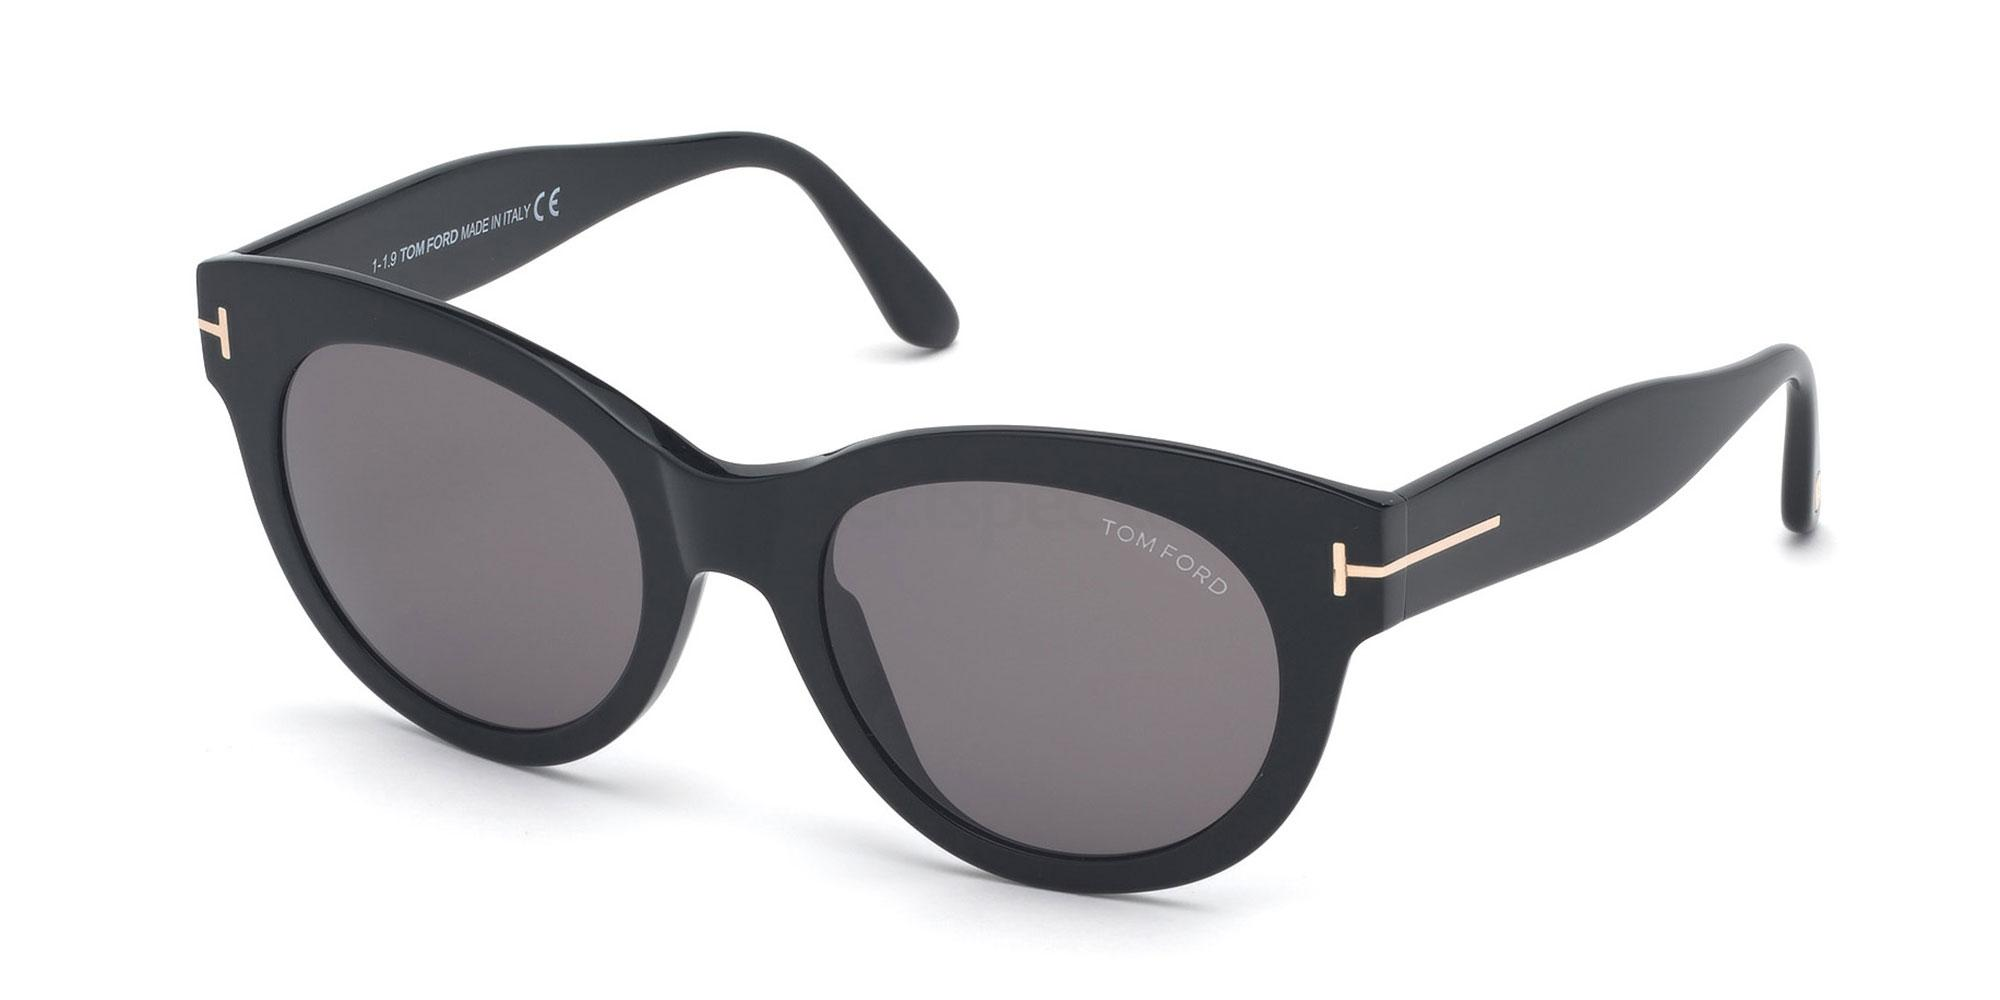 01A FT0741 Sunglasses, Tom Ford